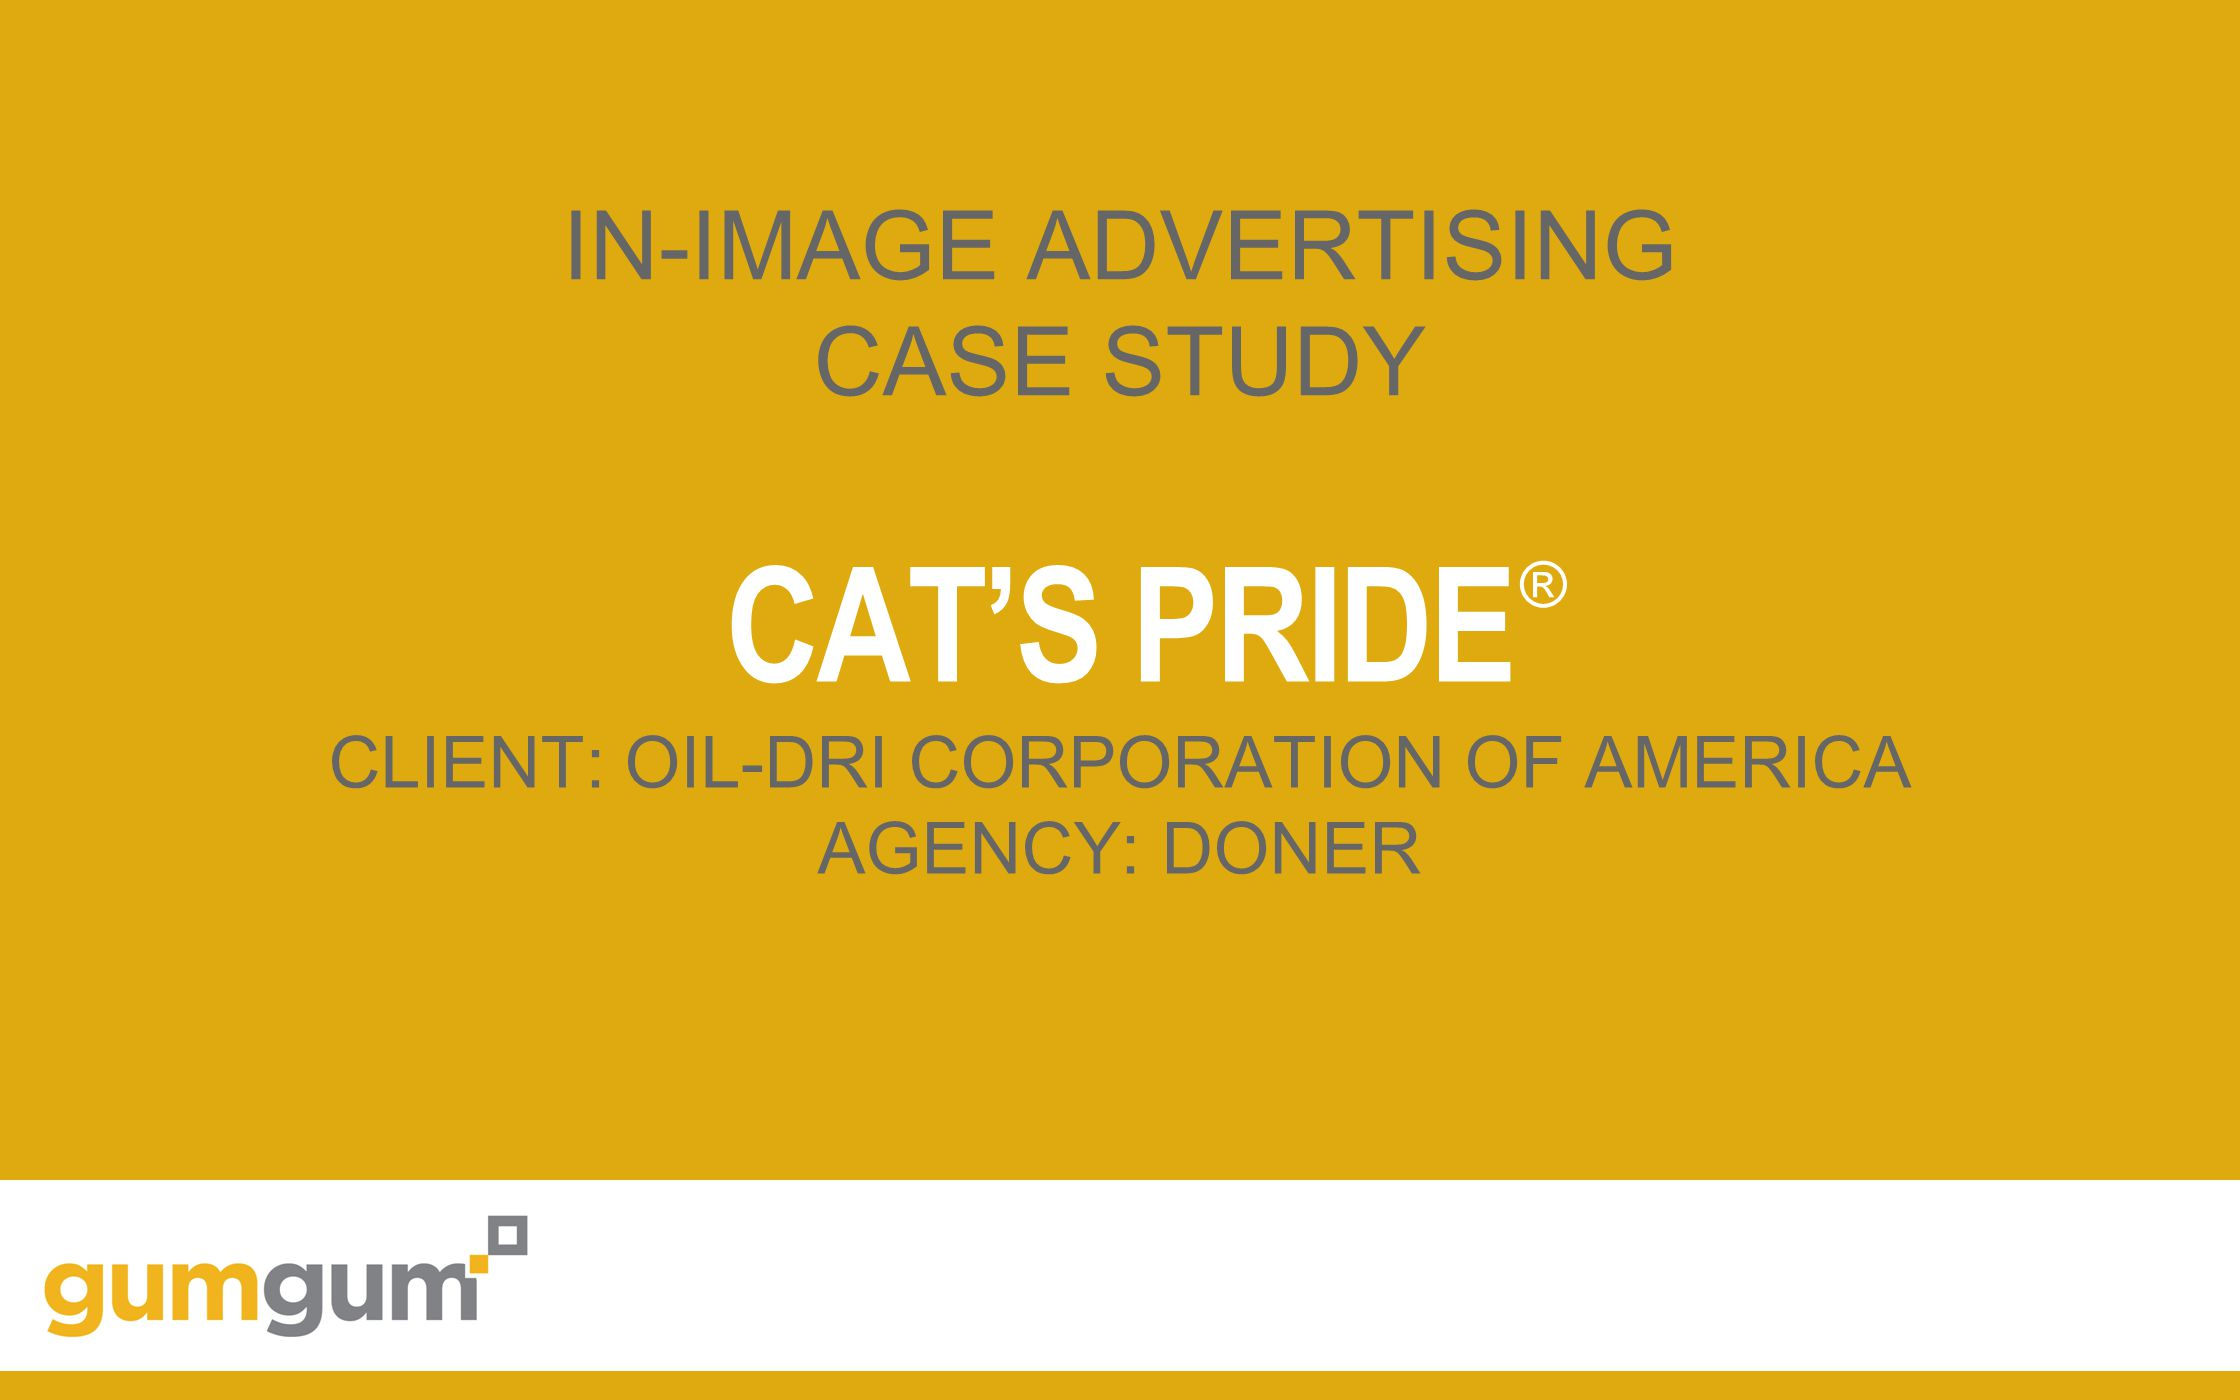 IN-IMAGE ADVERTISING CASE STUDY CAT'S PRIDE CLIENT: OIL-DRI CORPORATION OF AMERICA AGENCY: DONER ®